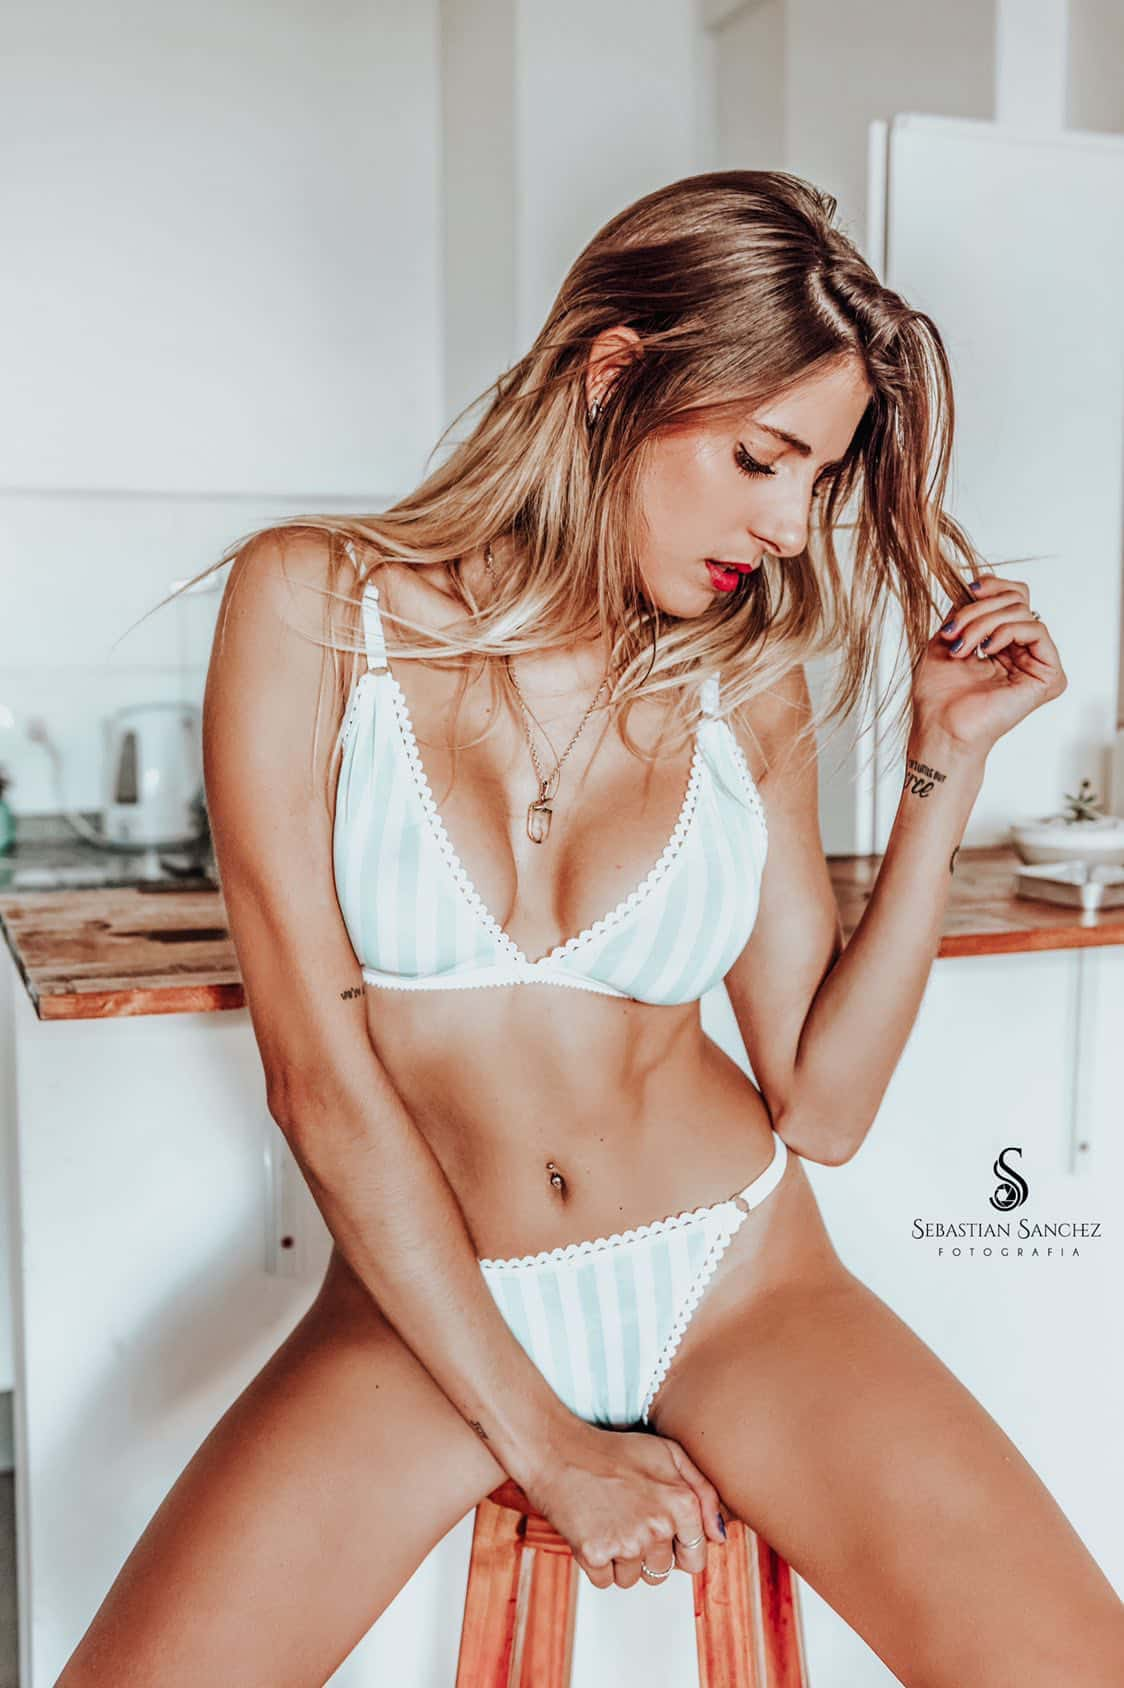 Beautiful Argentinian blonde model Camila Sol Botti sitting on a wooden stool only wearing striped white underwear showing cleavage looking down